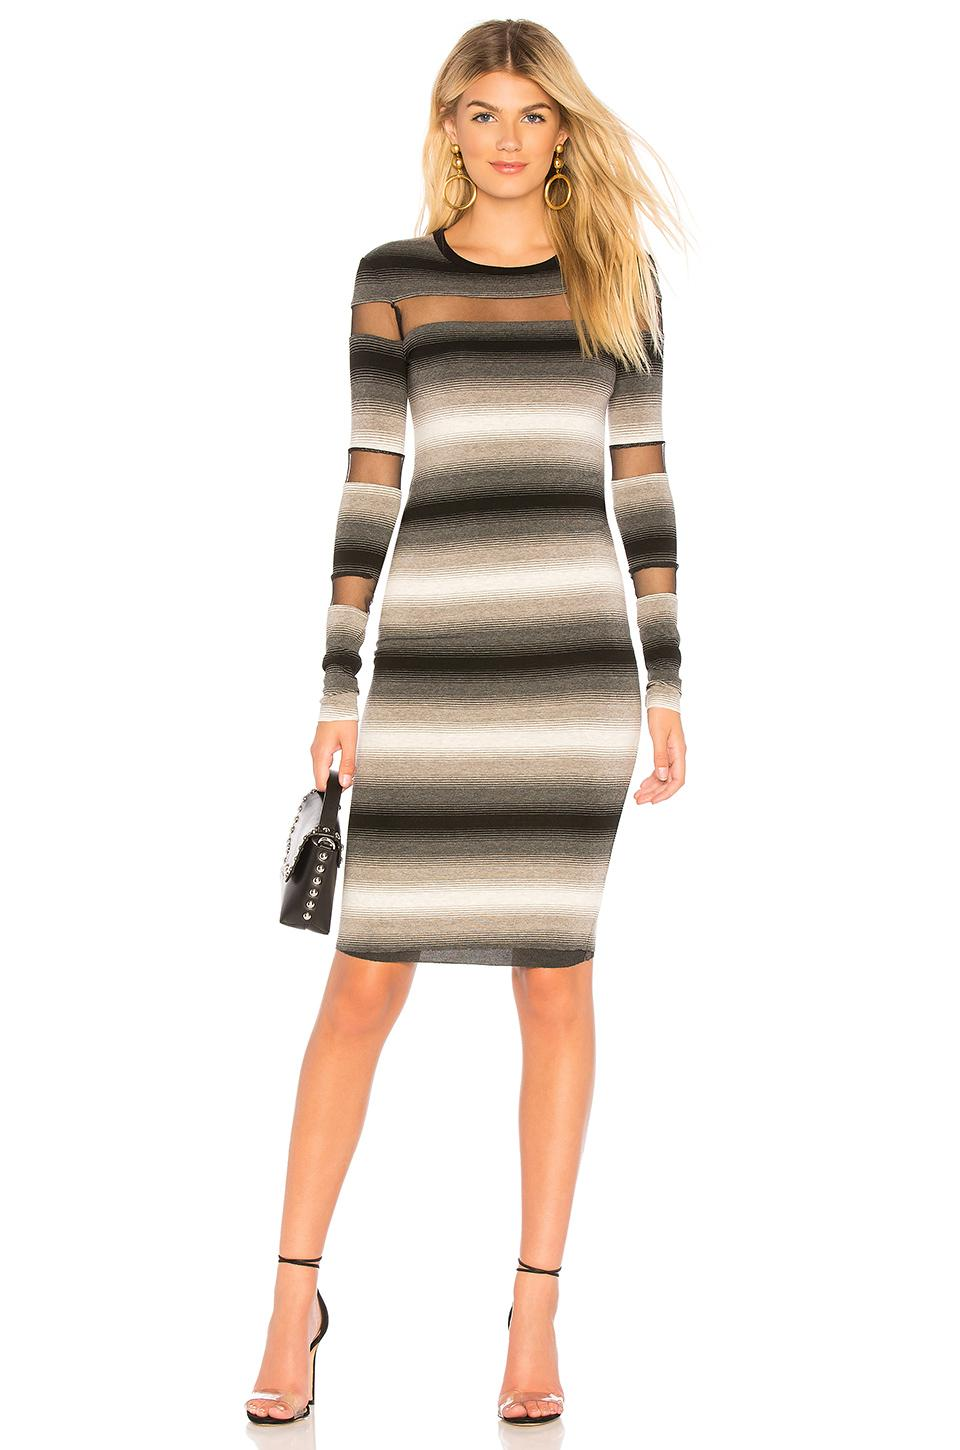 Bailey44 Death Cookie Pegged Dress In Anthracite